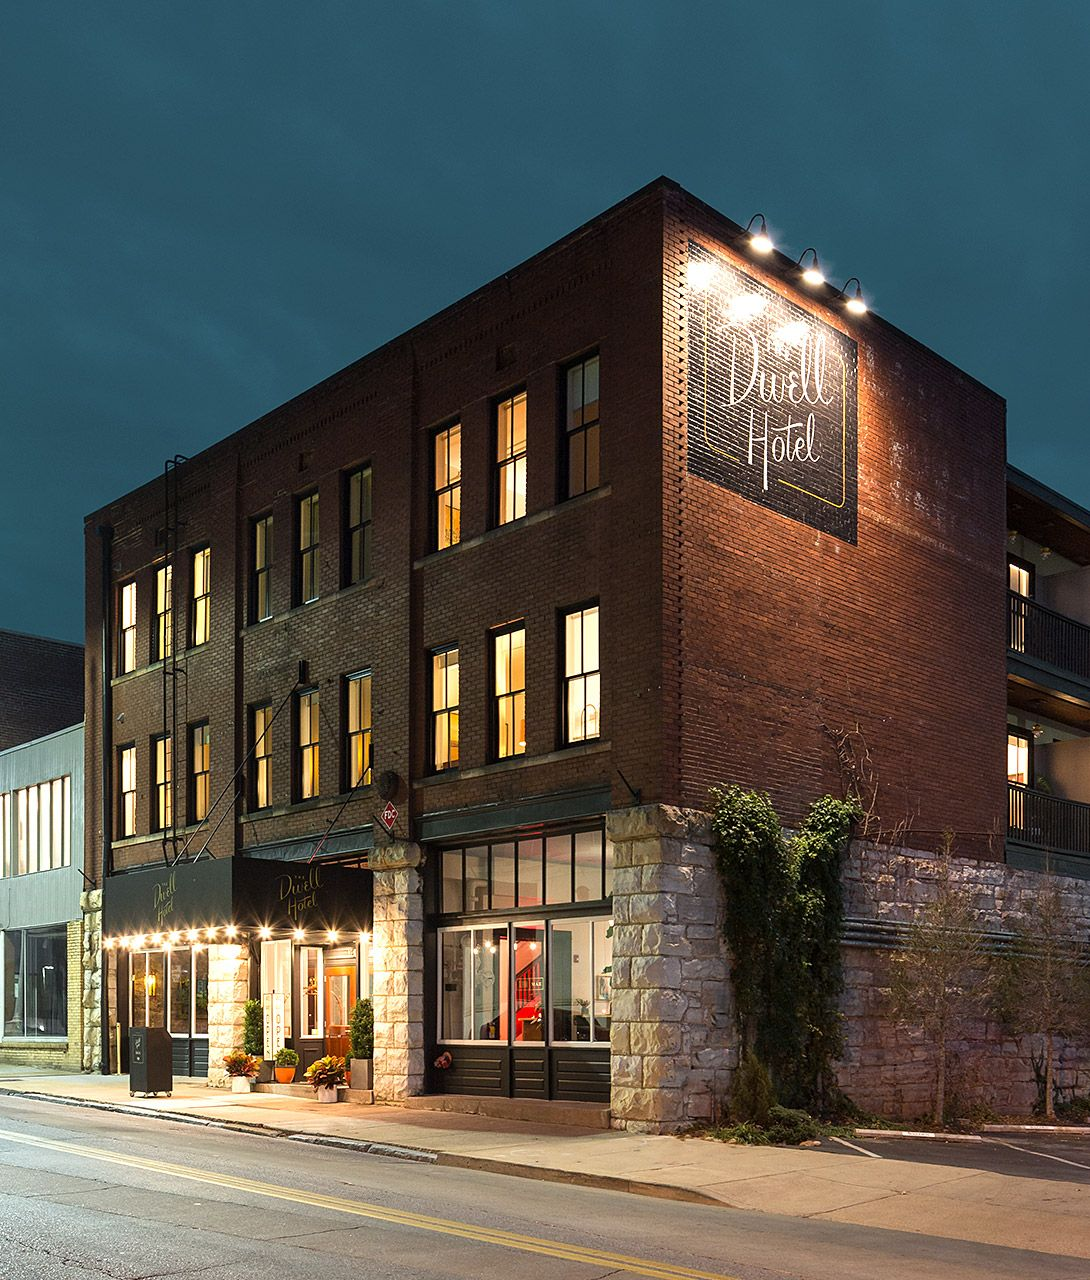 The Dwell Architecture in Chattanooga